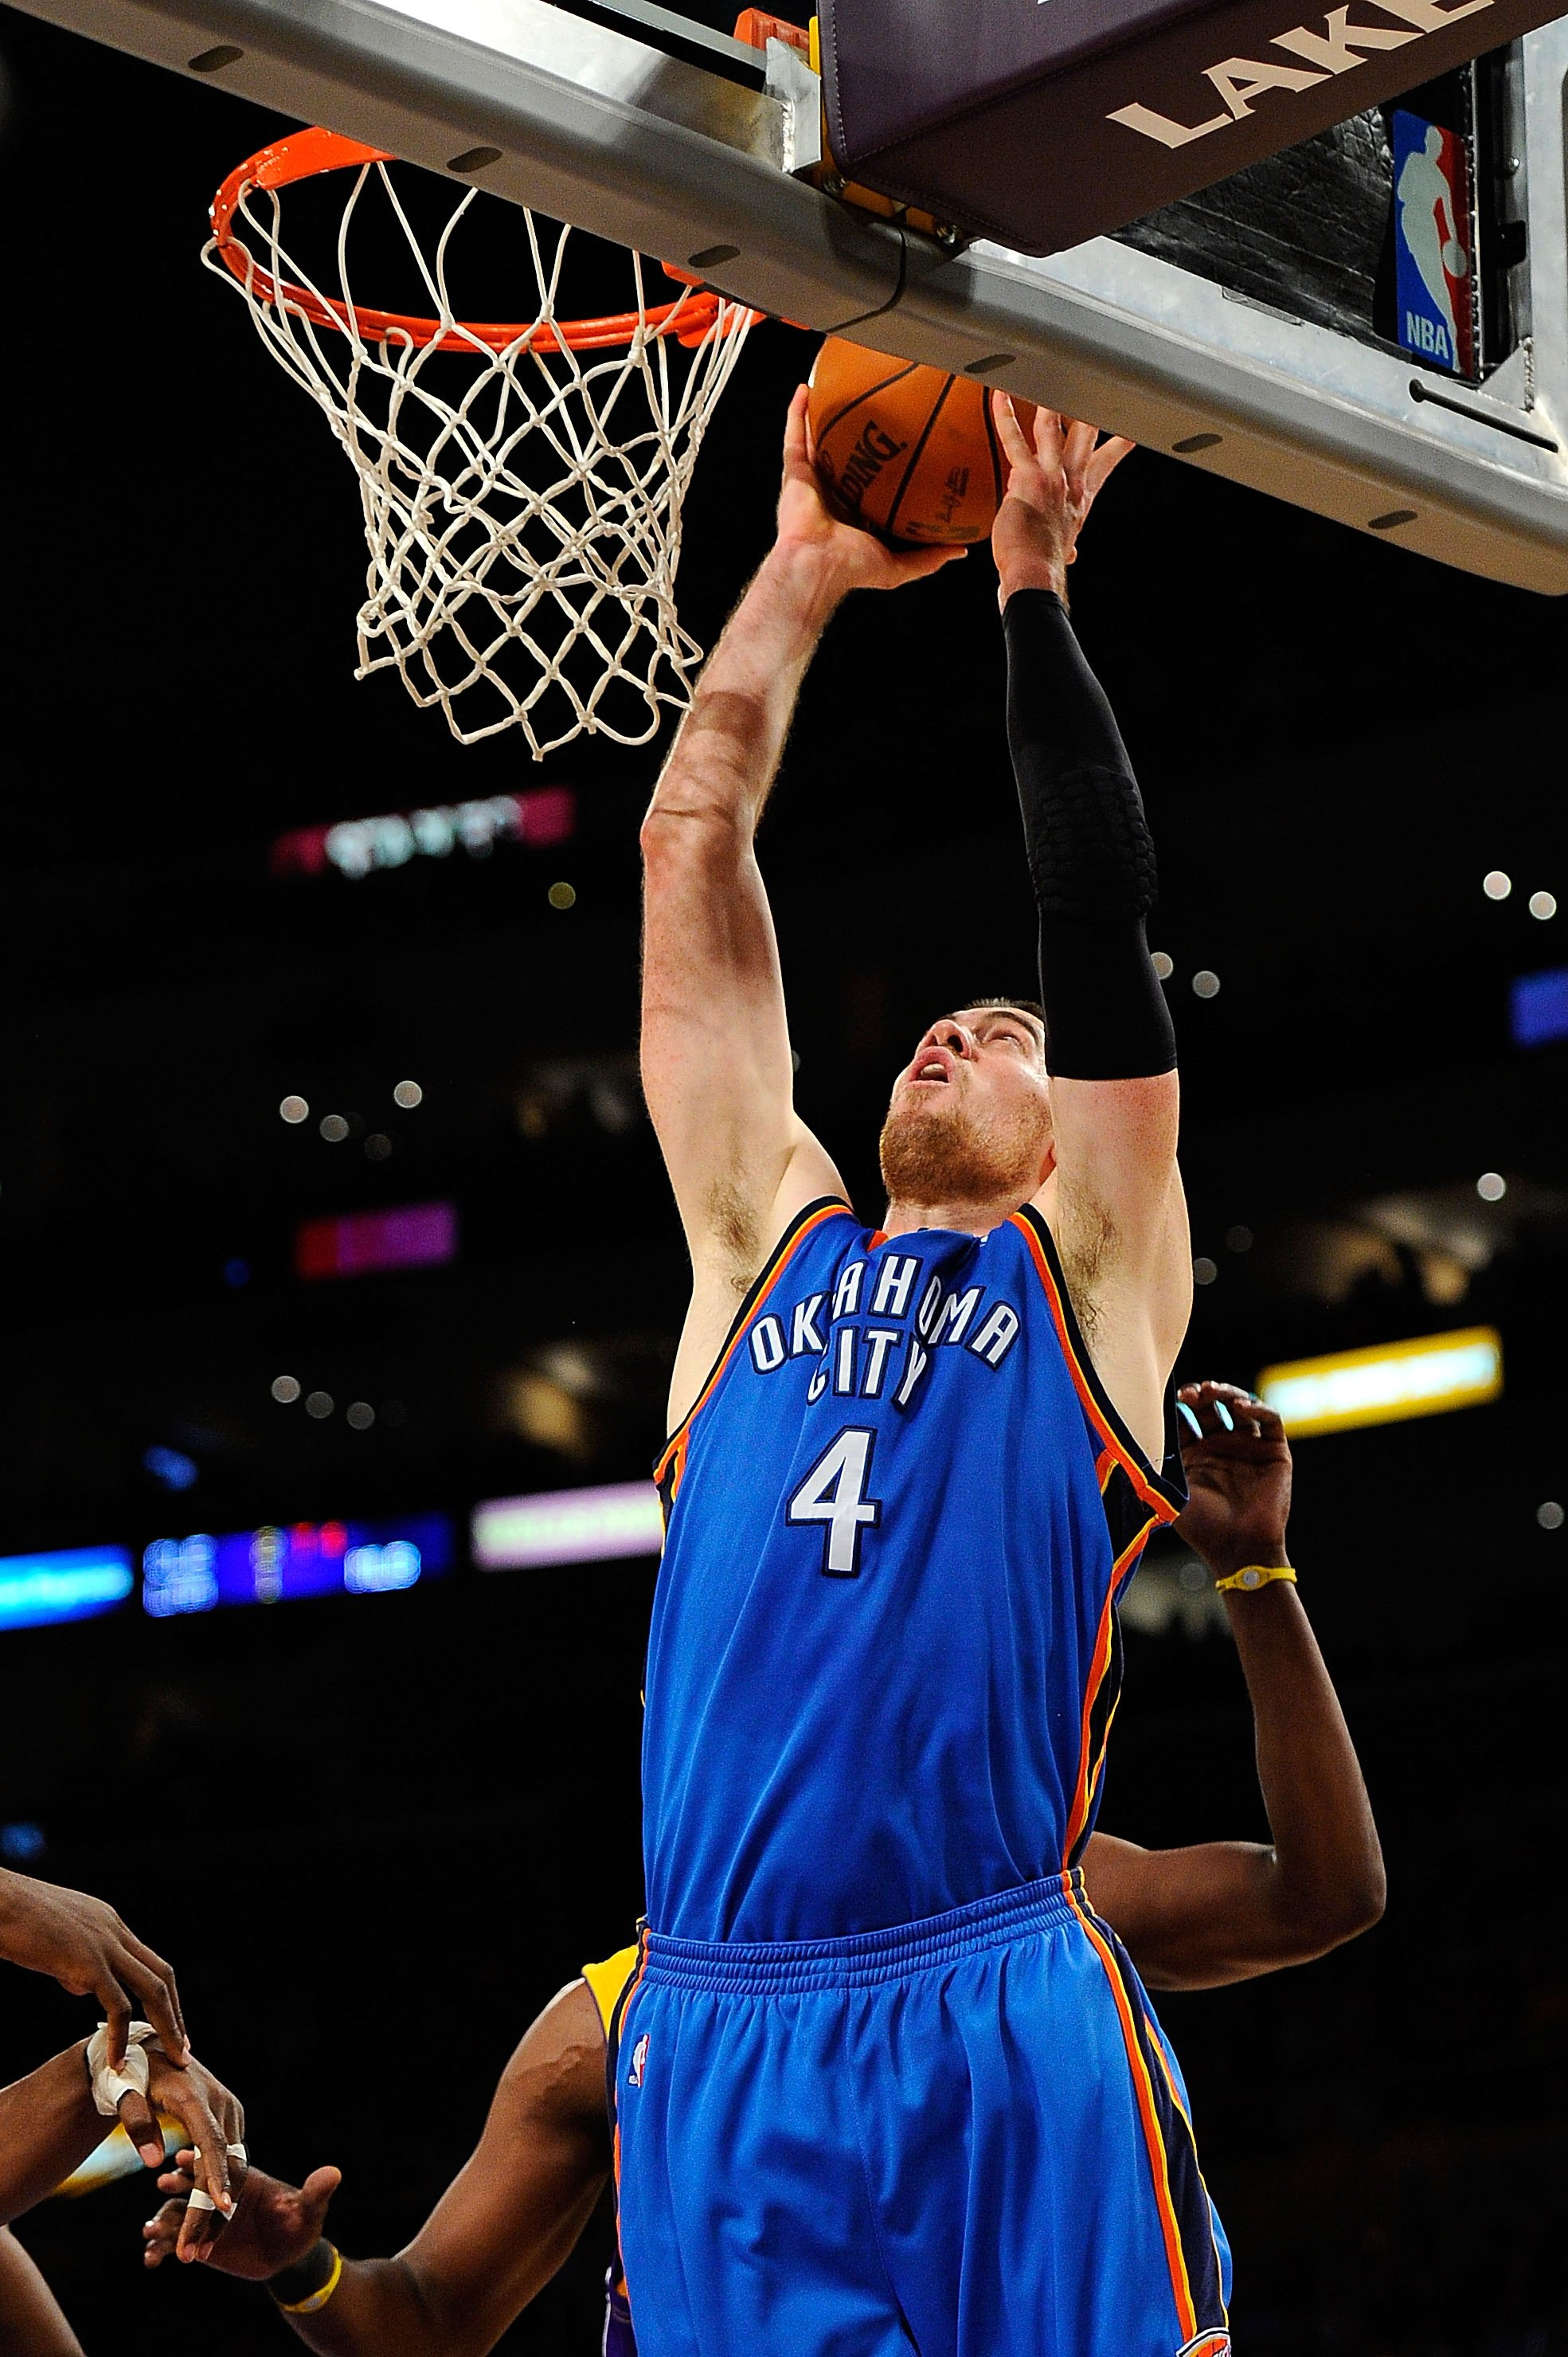 LOS ANGELES, CA - APRIL 27:  Nick Collison #4 of the Oklahoma City Thunder dunks the ball against the Los Angeles Lakers during Game Five of the Western Conference Quarterfinals of the 2010 NBA Playoffs at Staples Center on April 27, 2010 in Los Angeles,